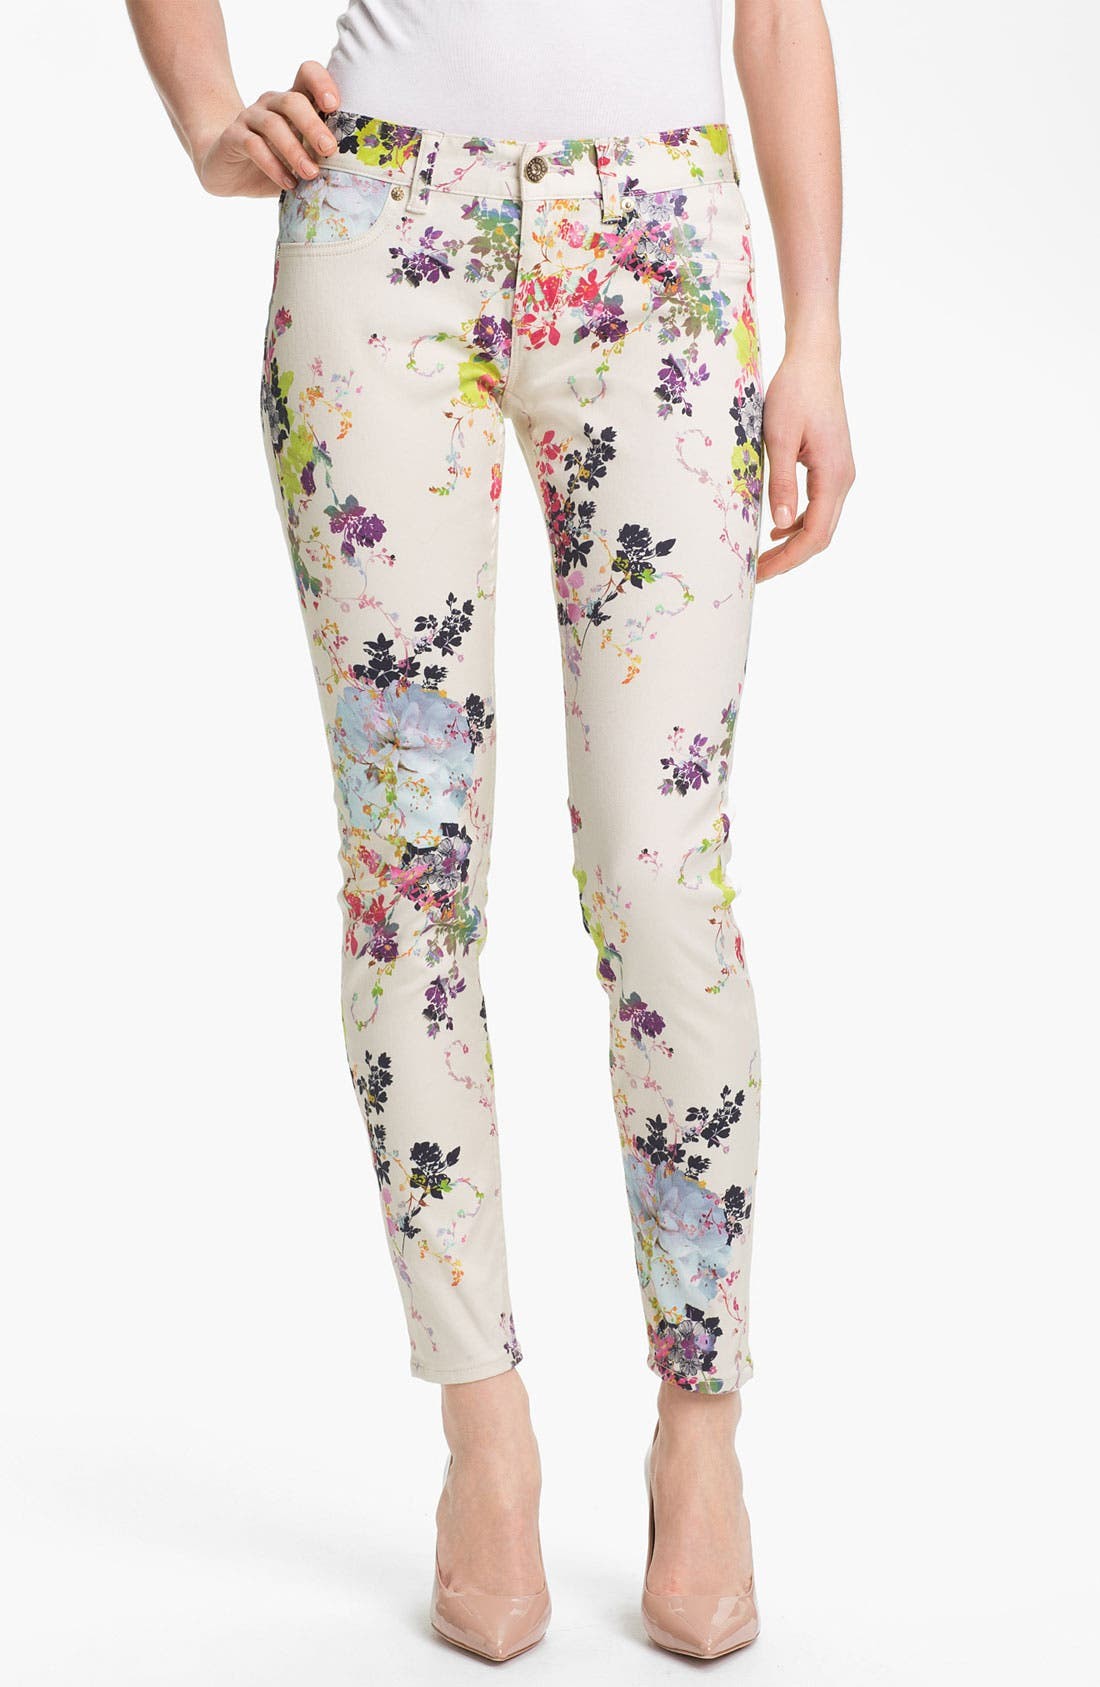 Alternate Image 1 Selected - Ted Baker London 'Summer Bloom' Print Skinny Stretch Crop Jeans (Cream)